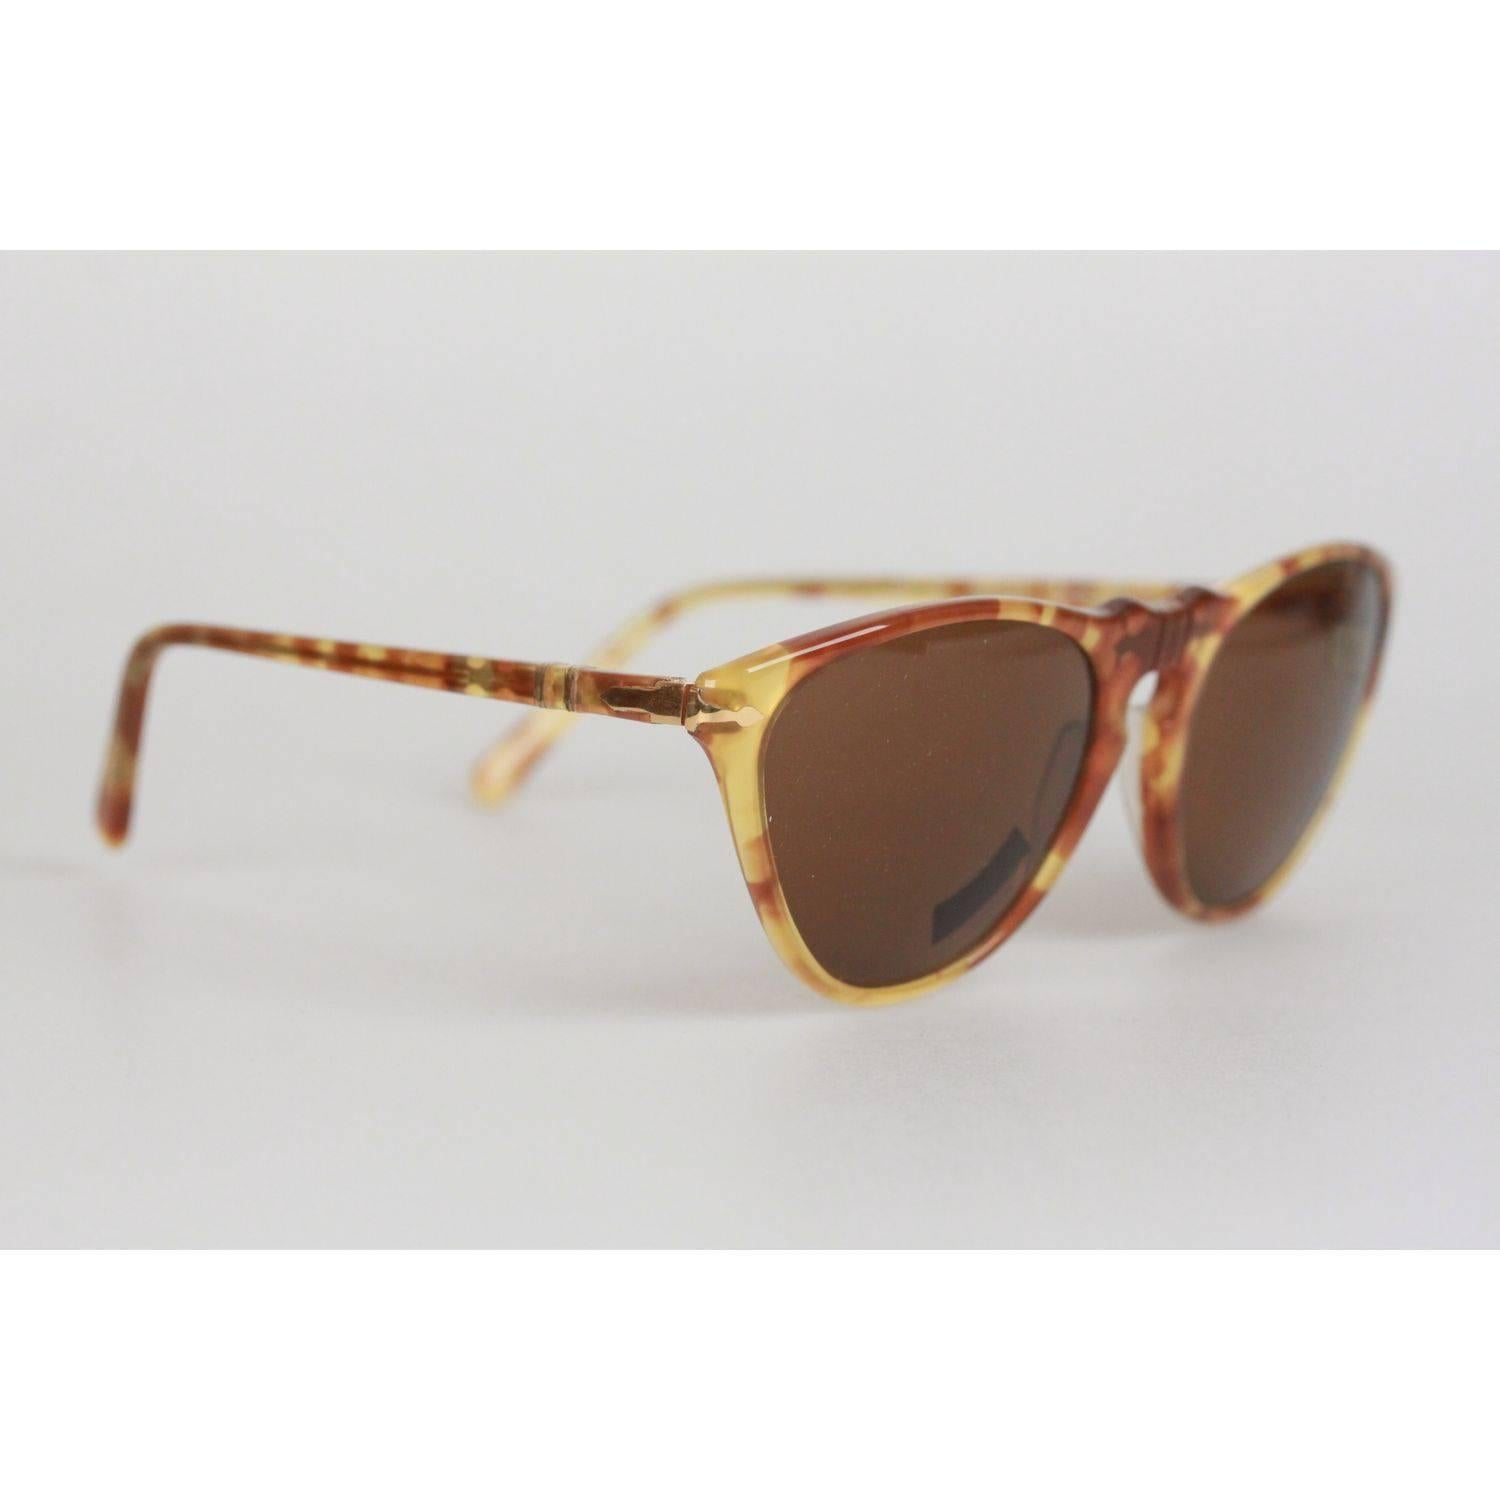 056a496d4e3eb Persol Ratti Vintage Tan 48mm Sunglasses 201 Cat Eye Eyeglasses For Sale at  1stdibs